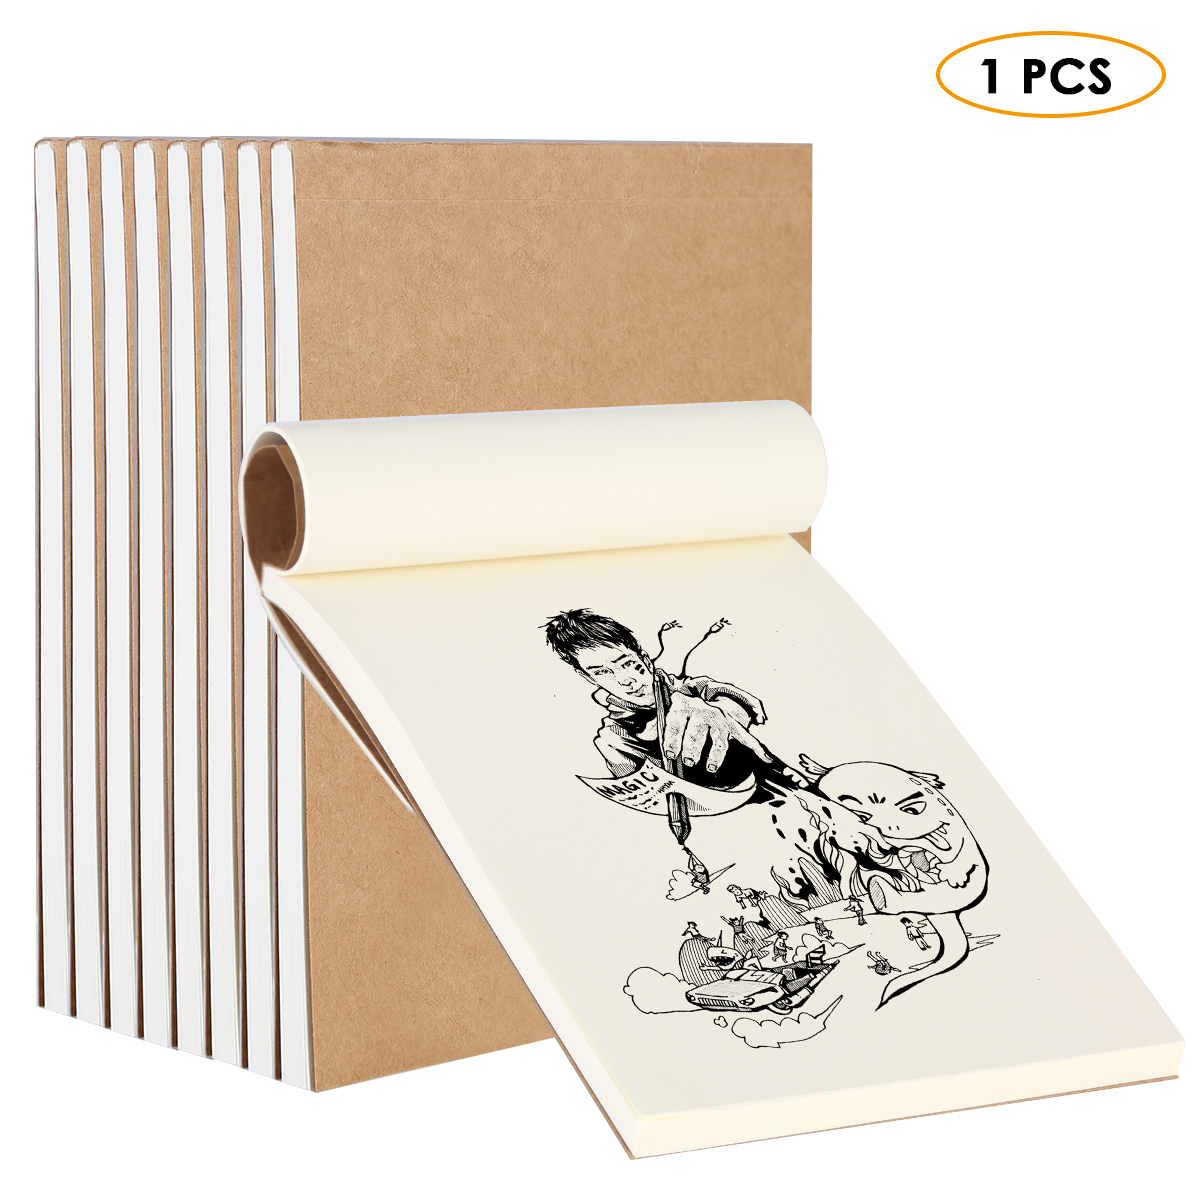 1Pc 80 Sheets Blank Flipbook Kraft Cover Drawing Sketchbook Thumb Flip Books For Animation Cartoon Creation